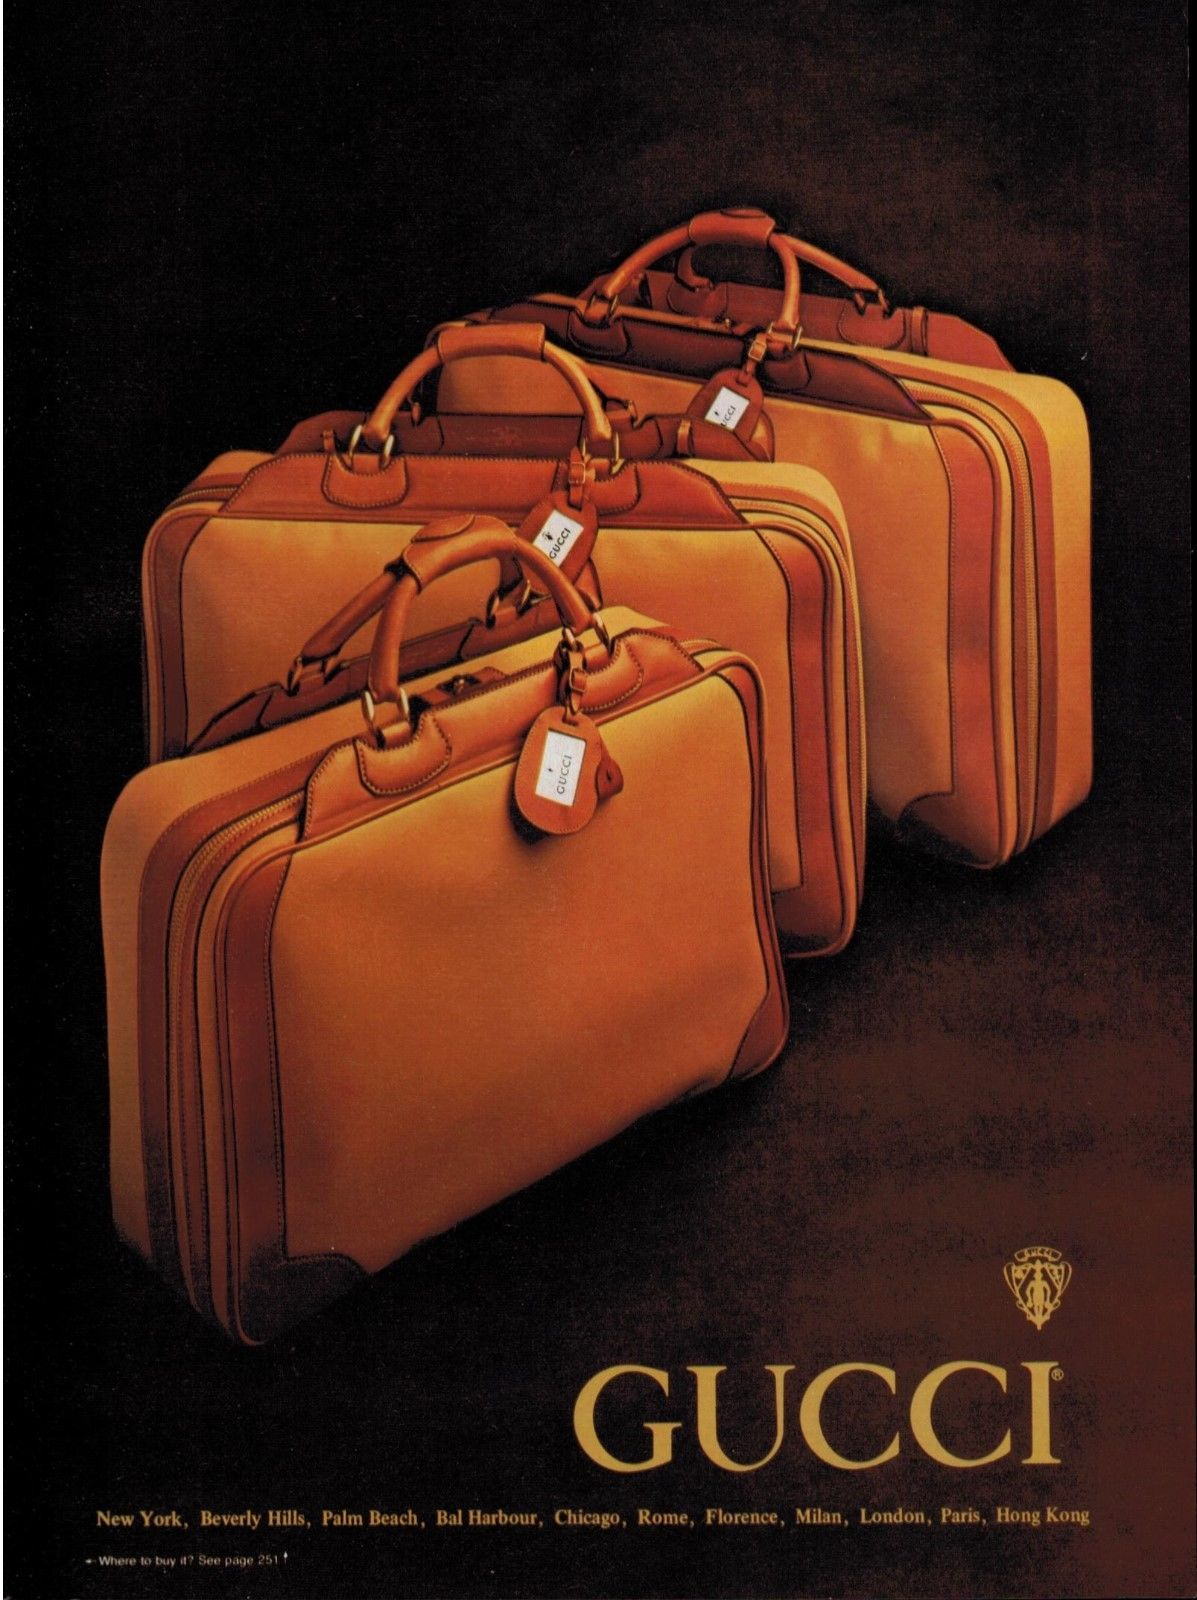 1979 Gucci leather luggage set with ID tags print ad - Vintage Gucci advertising campaigns archive